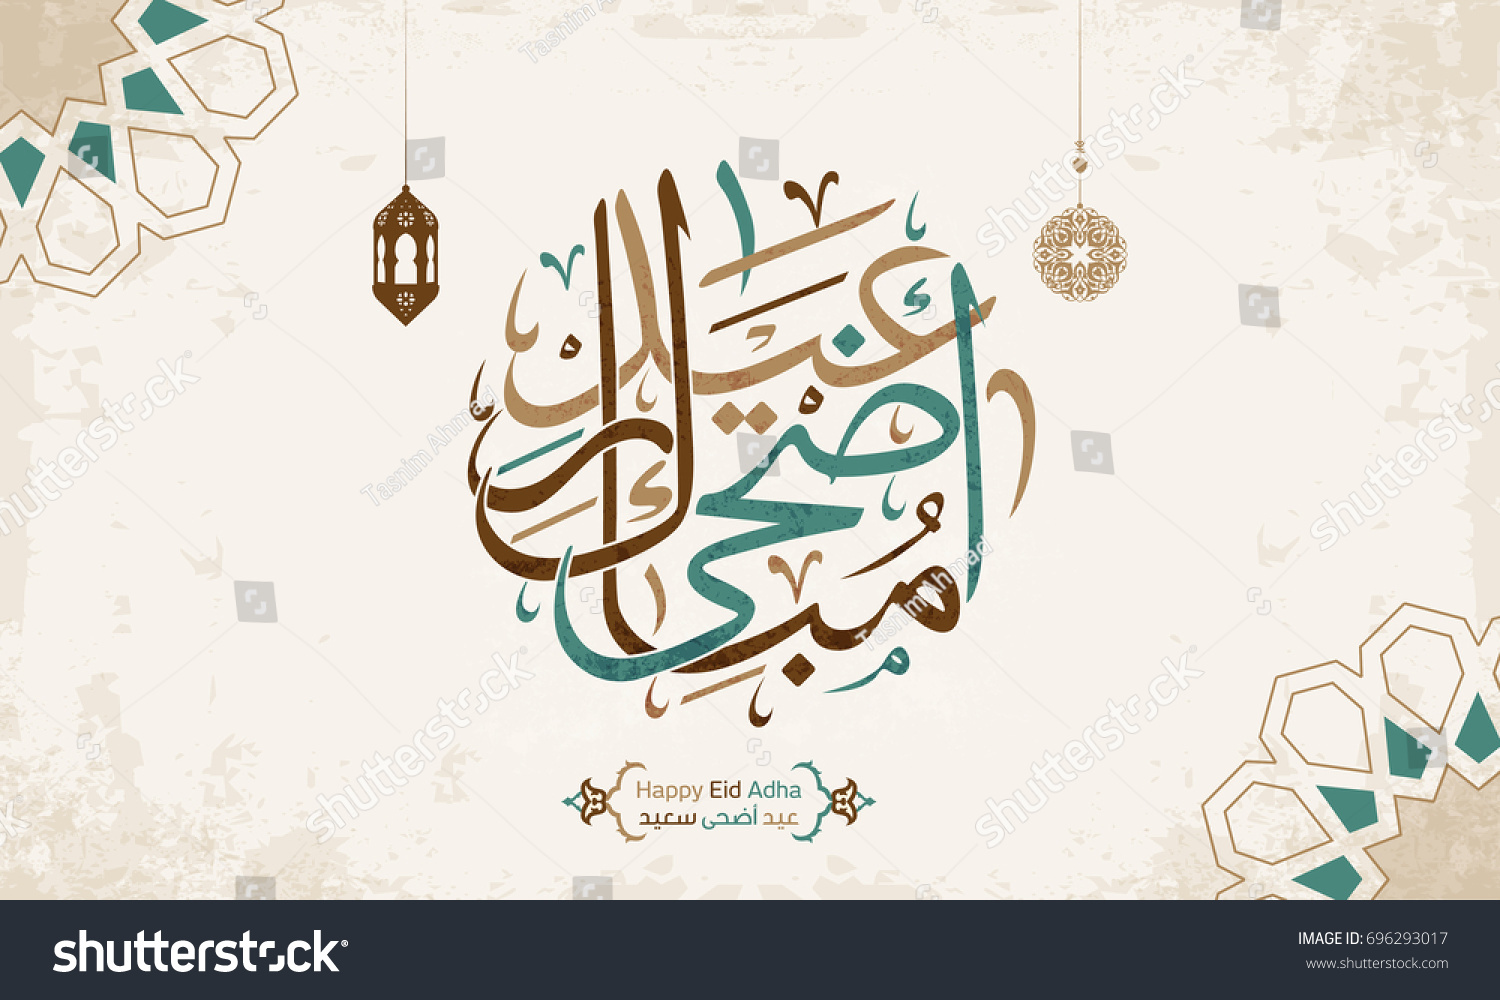 Vector of Arabic Calligraphy text of Eid Al Adha Mubarak for the celebration of Muslim community celebration #696293017